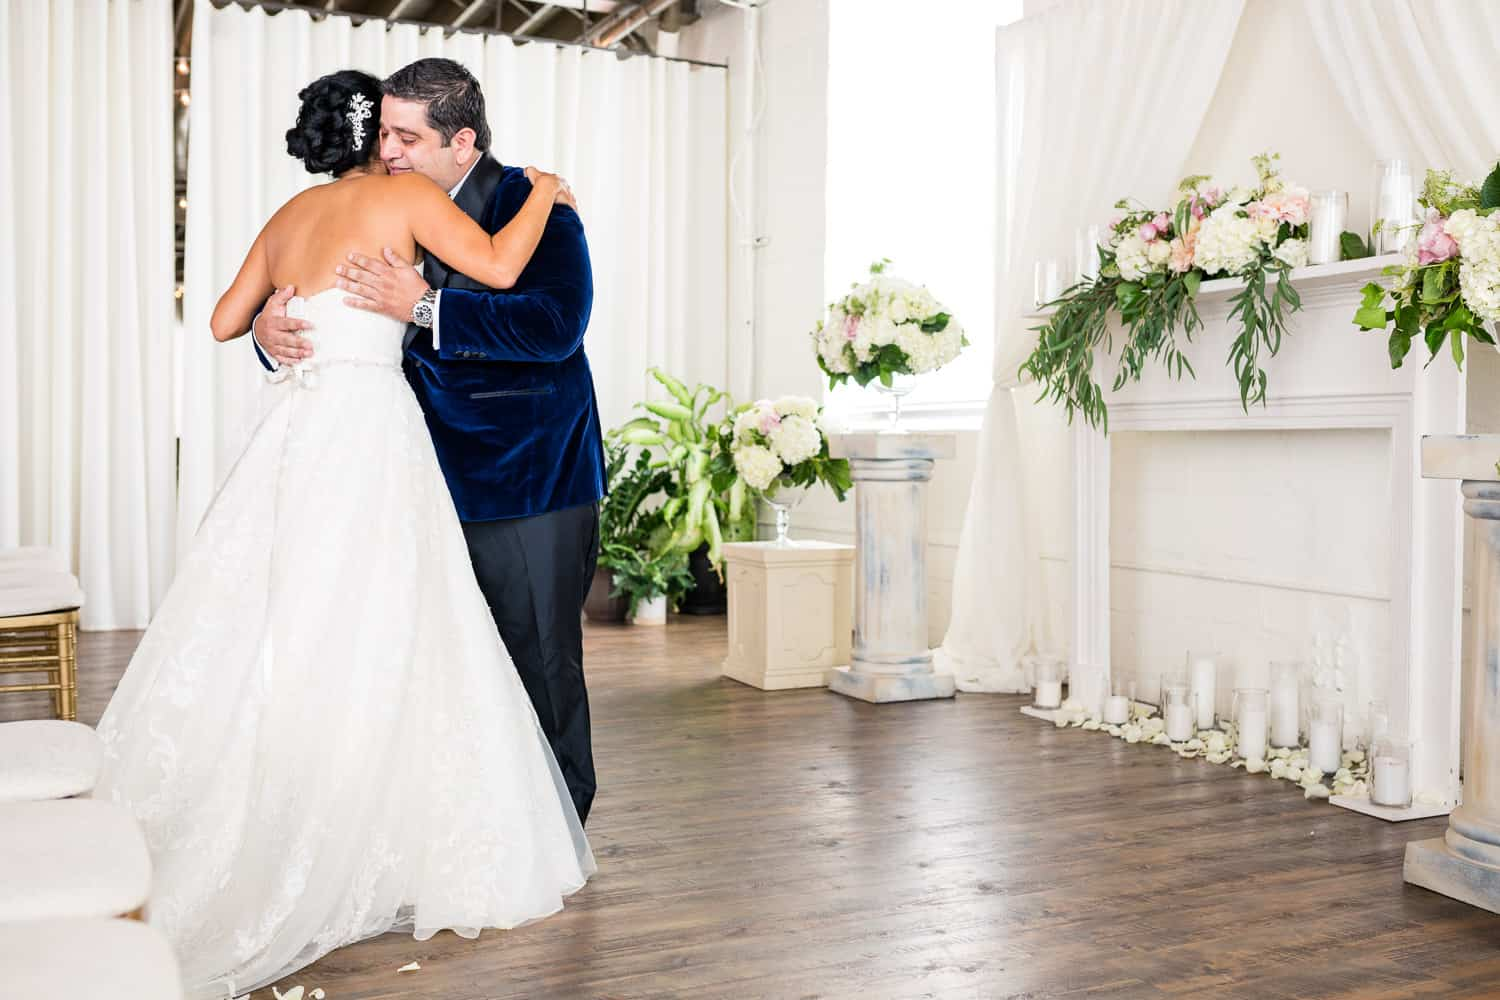 Rosemary and AJ hug during their first look at the Arbor Loft.